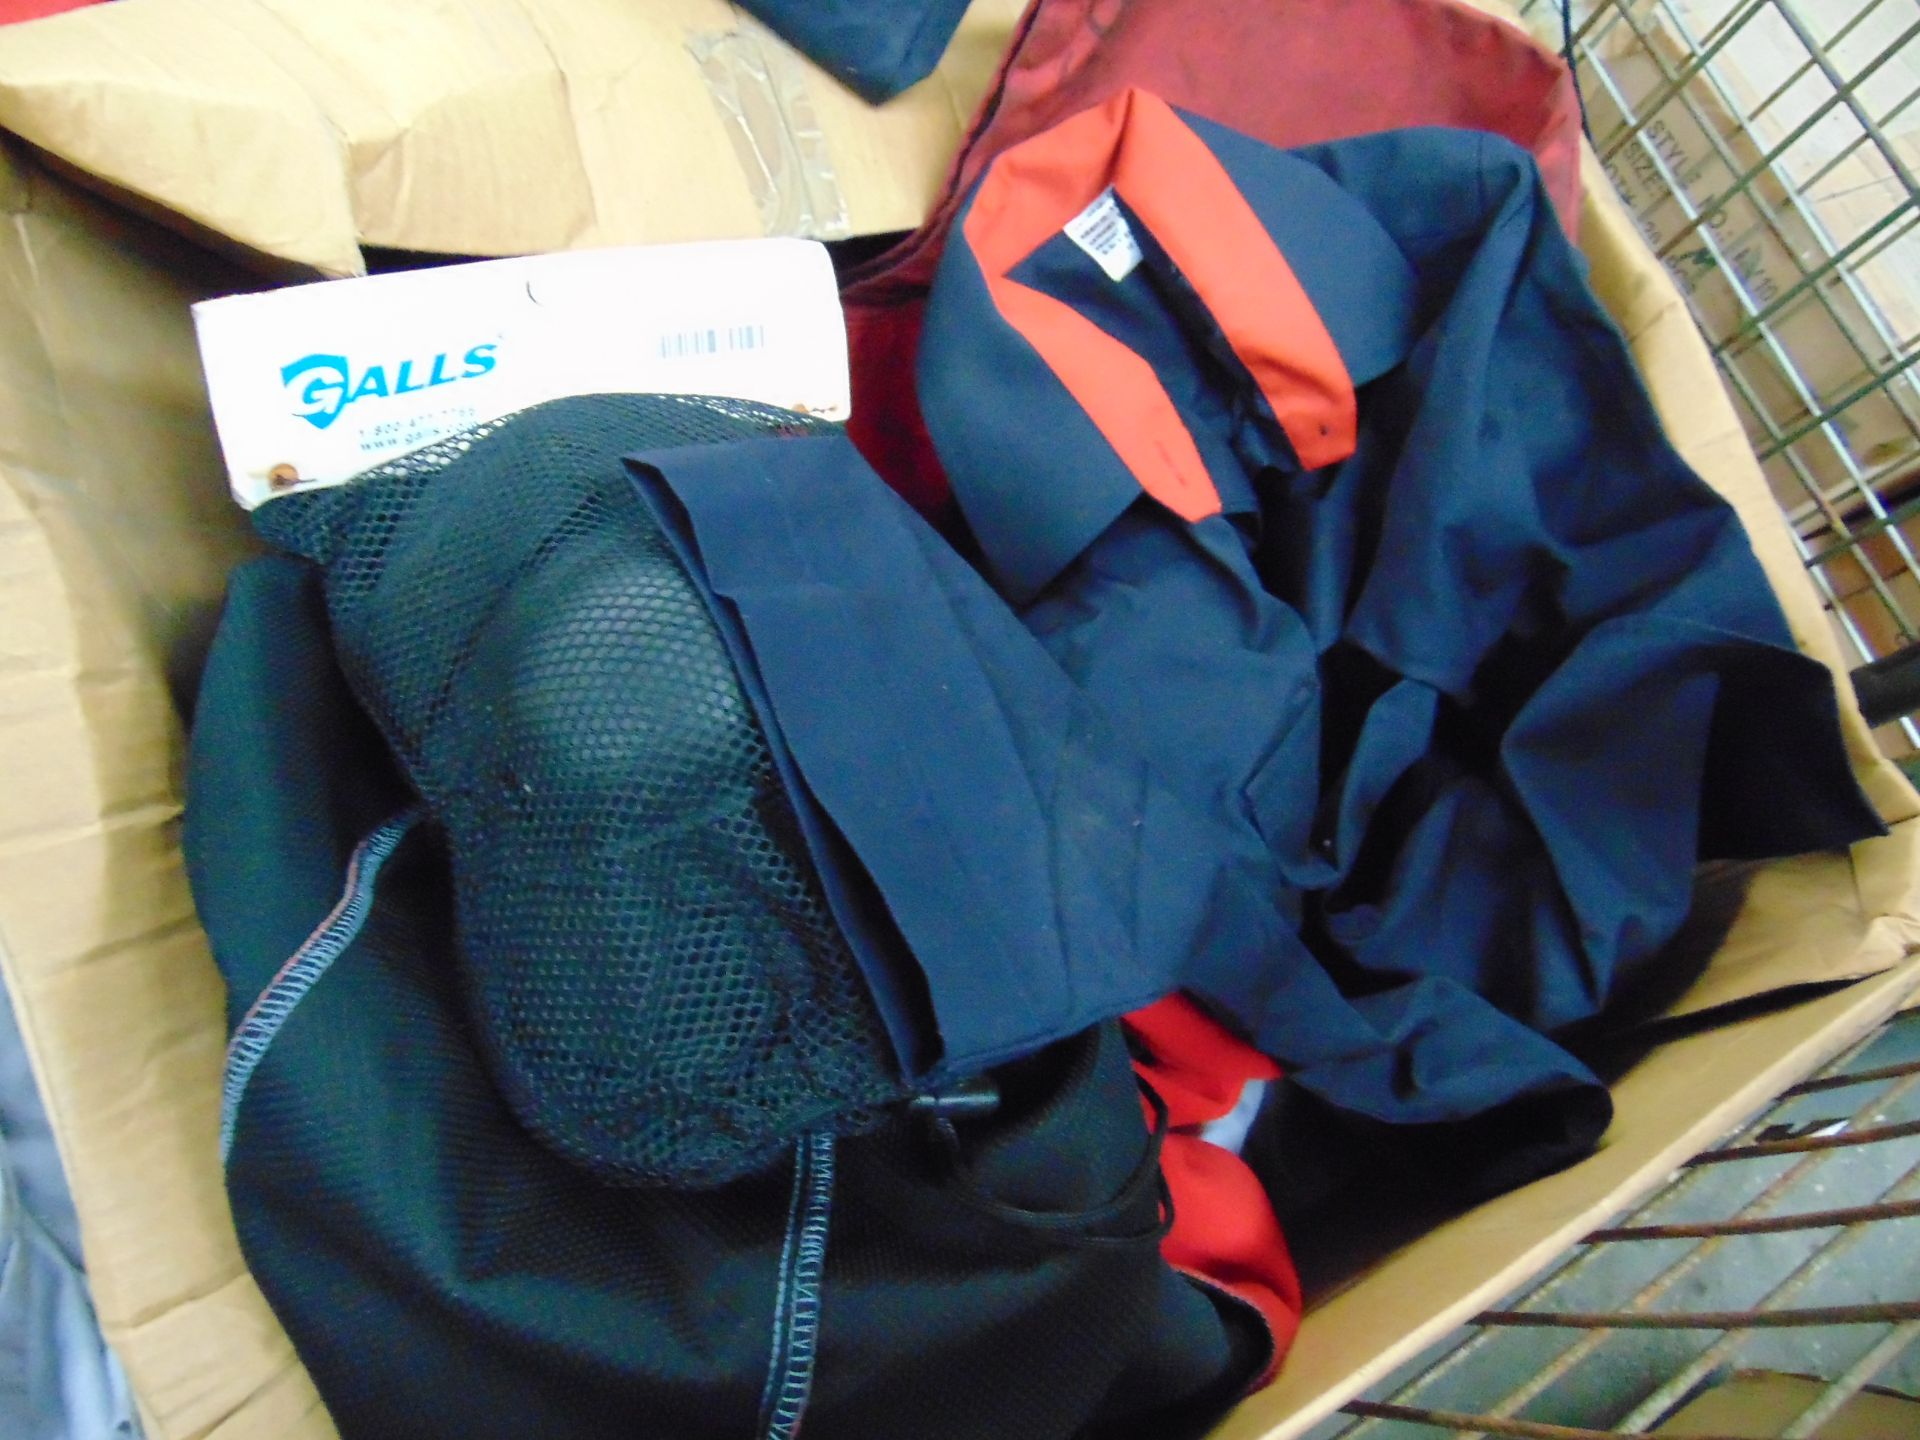 Mixed Clothing including Shirts, T shirts, Trousers, Fleece Jackets, Knee Pads Etc - Image 4 of 4